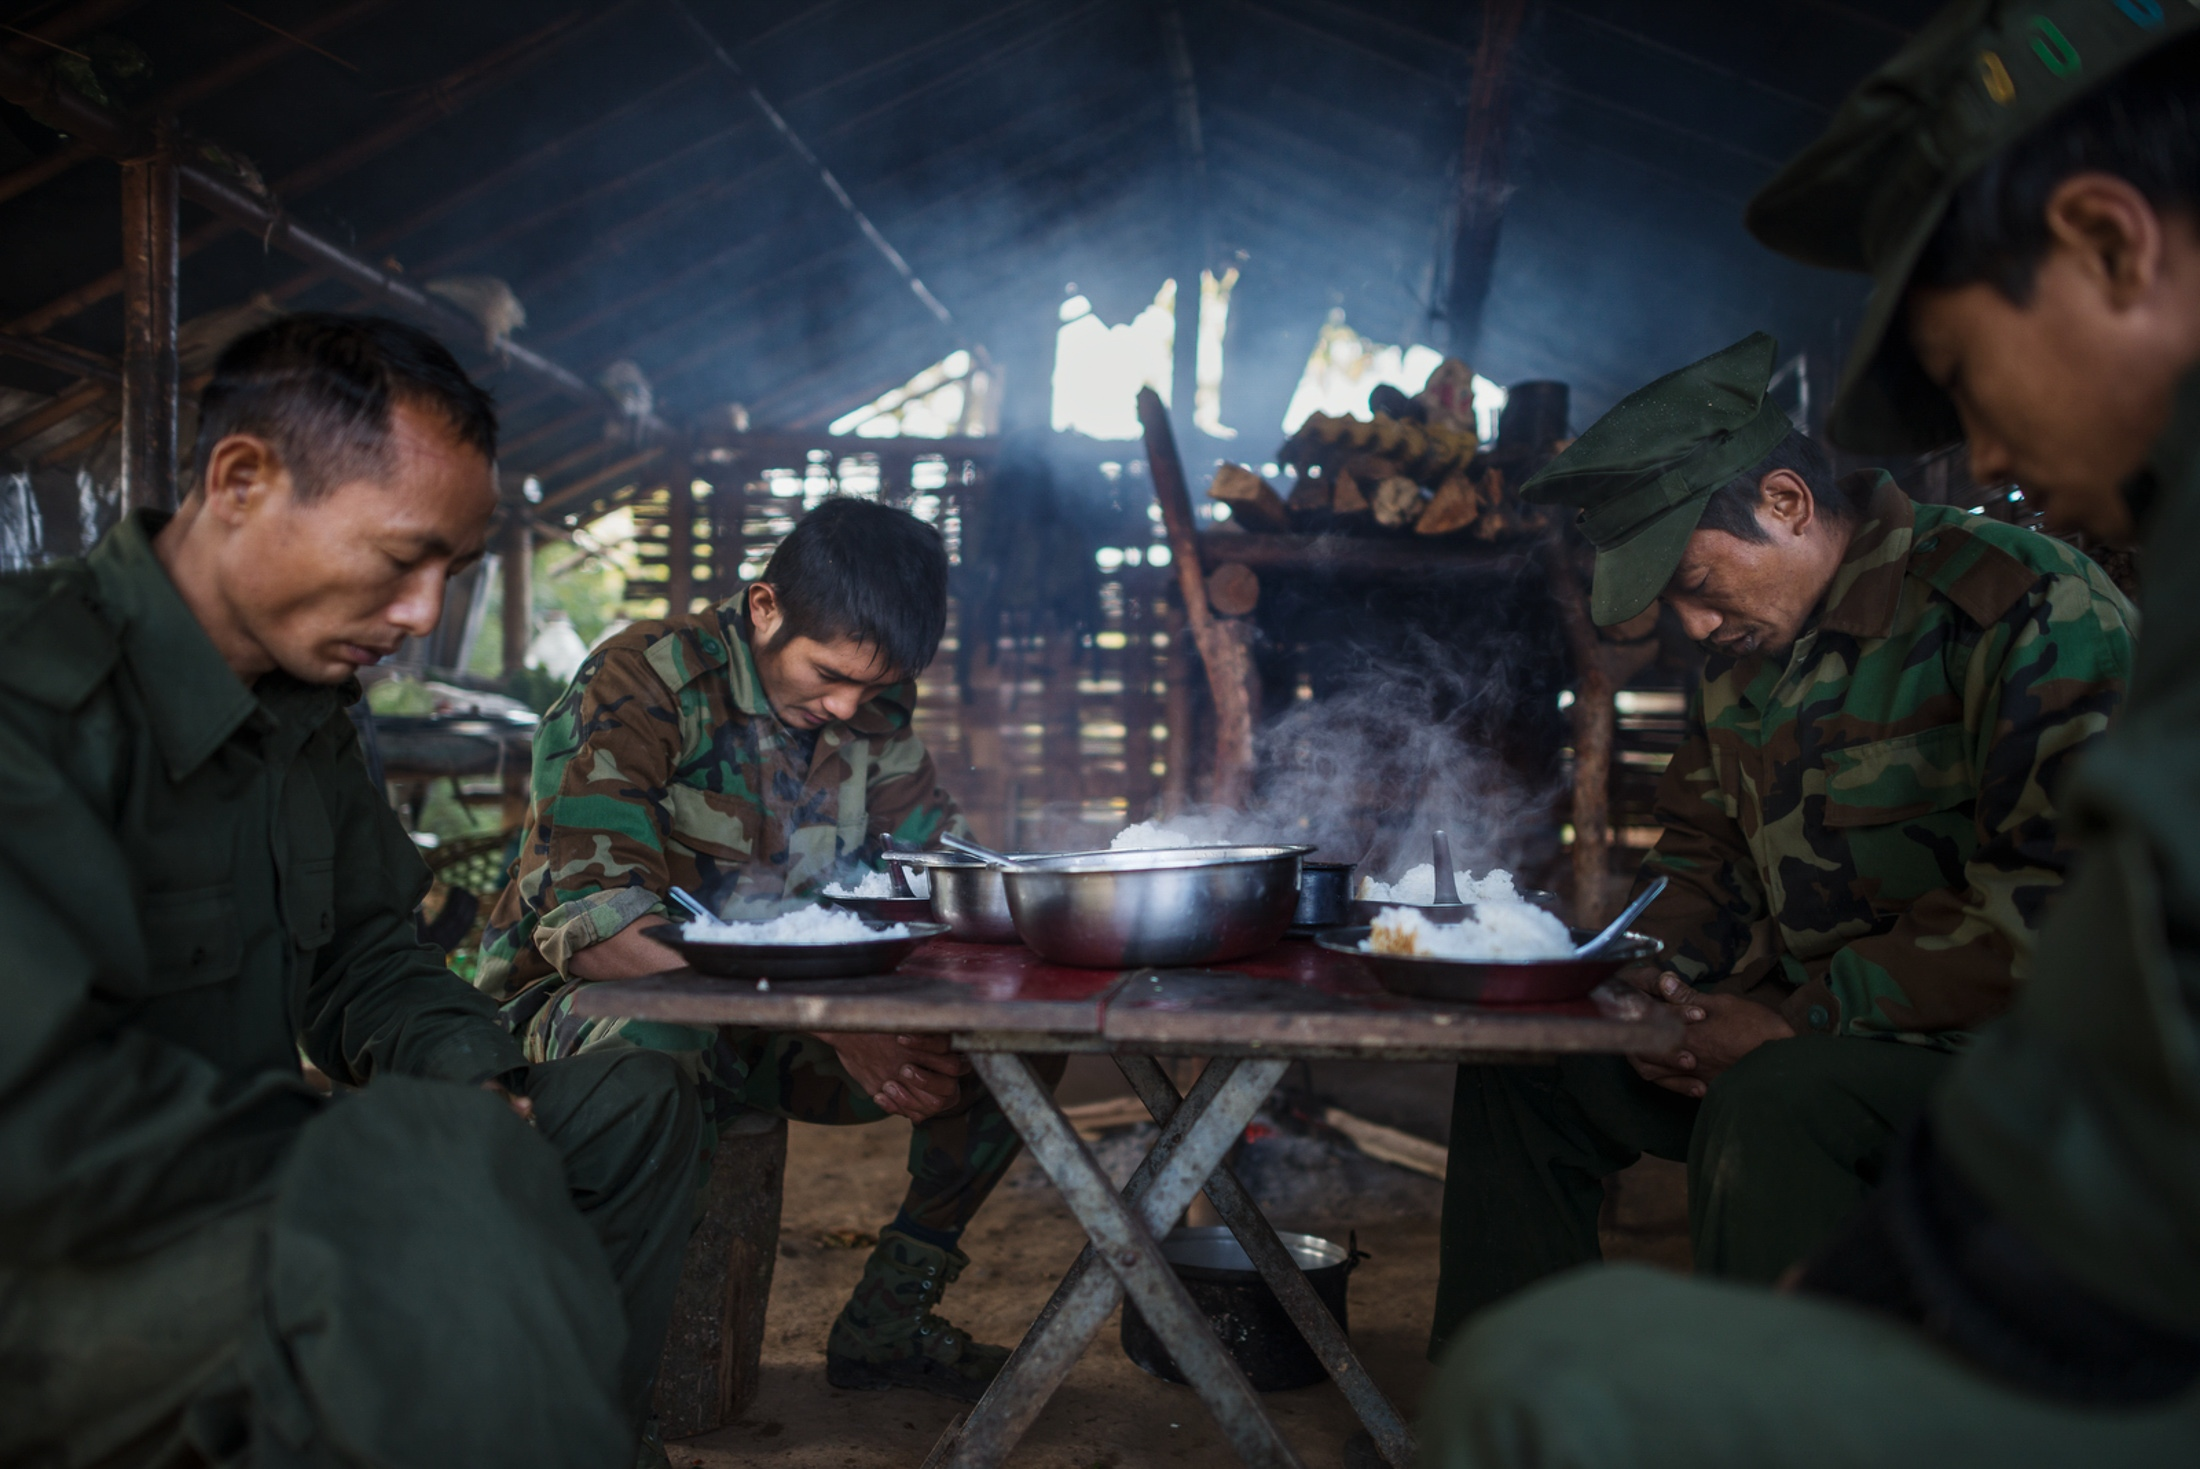 Byuwa Yaw Han, Aung Lun, Naw San and Aung Lat, of the Kachin Independence Army, saying grace before breakfast at a frontline outpost just 1 km from the Burma Armys nearest outpost.